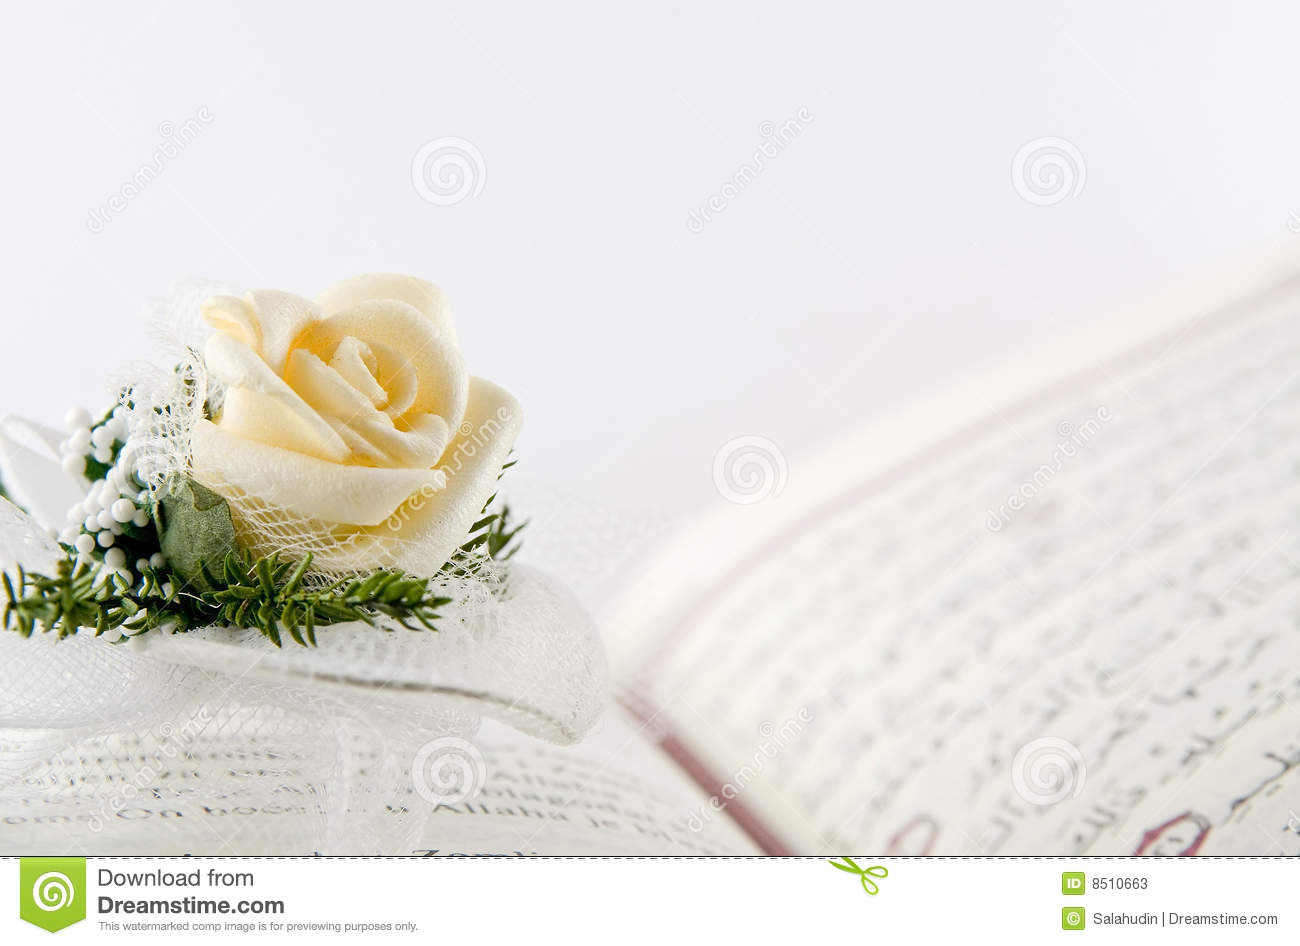 Sabr Quotes Wallpaper Quran And The Rose Stock Image Image Of Koran Page